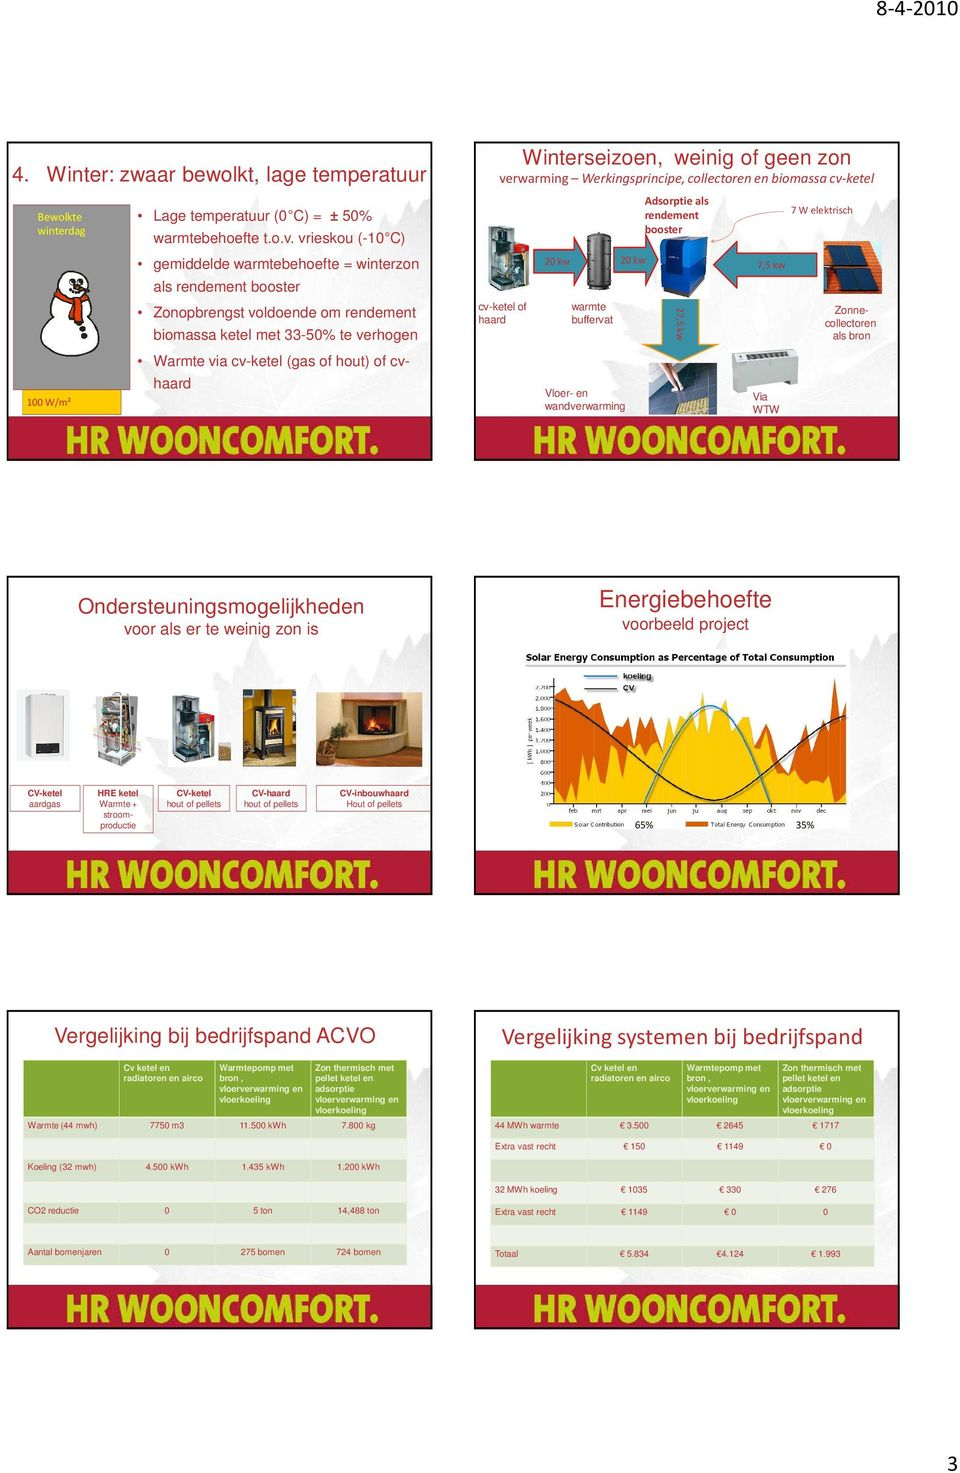 Werkingsprincipe, collectoren en biomassa cv-ketel cv-ketel of haard 0 kw wandverwarming 0 kw Adsorptieals rendement booster 7,5 kw 7,5 kw Warmte via cv-ketel (gas of hout) of cvhaard als bron